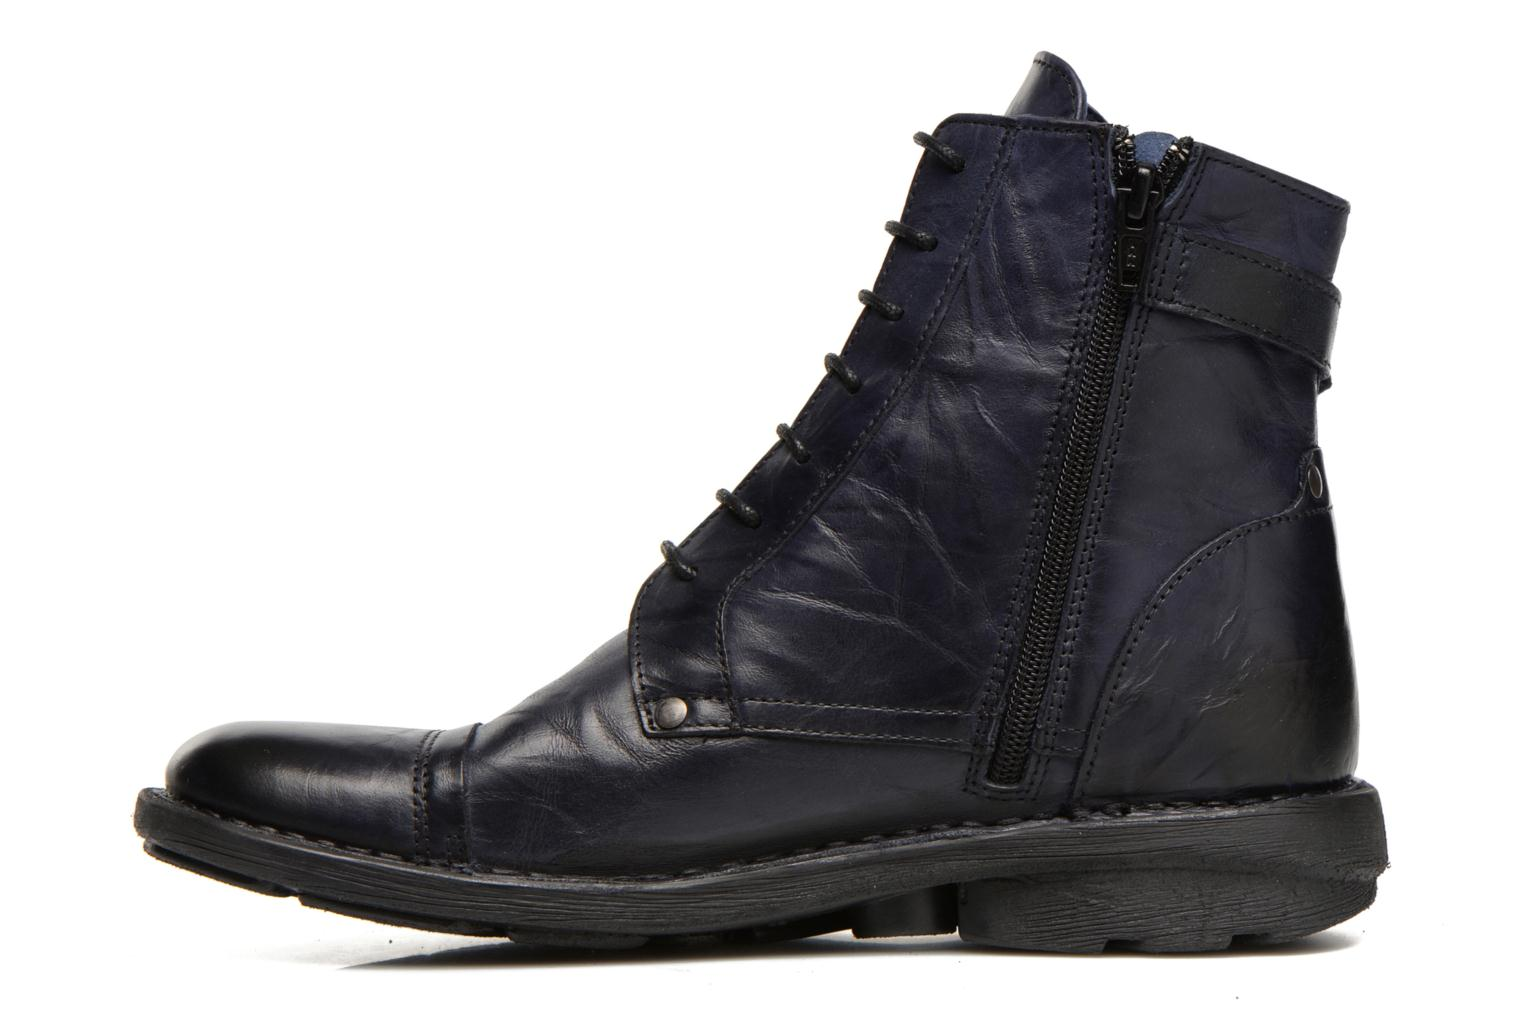 Bottines et boots Dorking Medina 6402 Bleu vue face